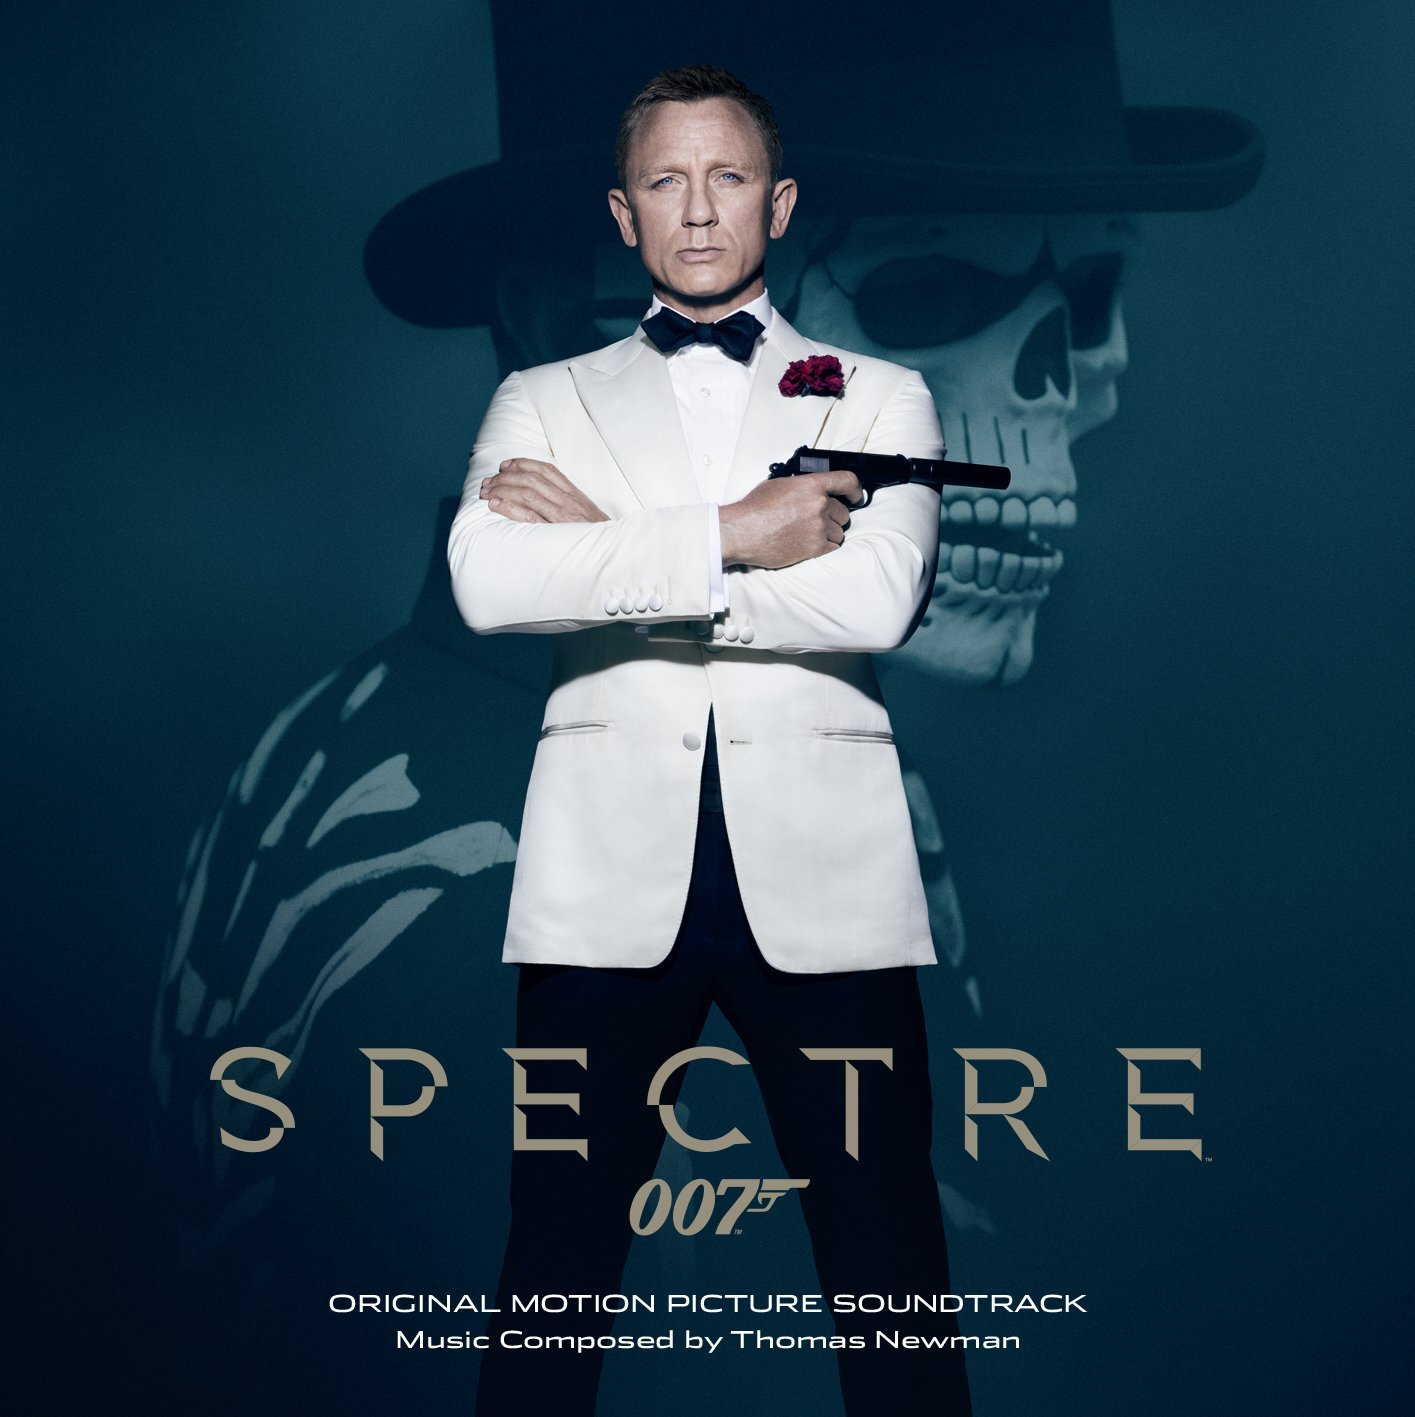 The album artwork for the soundtrack to SPECTRE